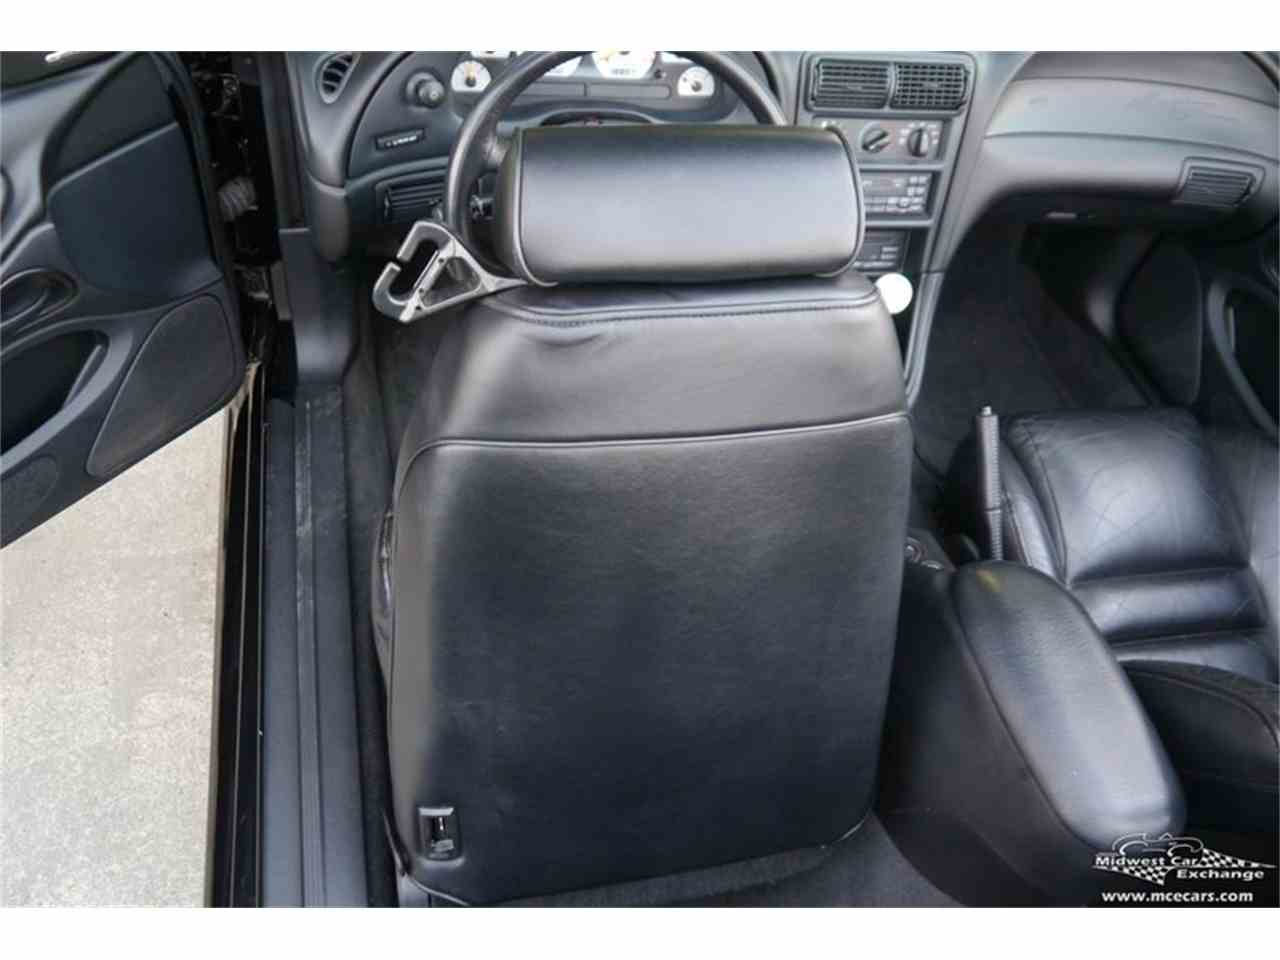 Large Picture of '97 Ford Mustang SVT Cobra located in Illinois - $16,900.00 - MELK